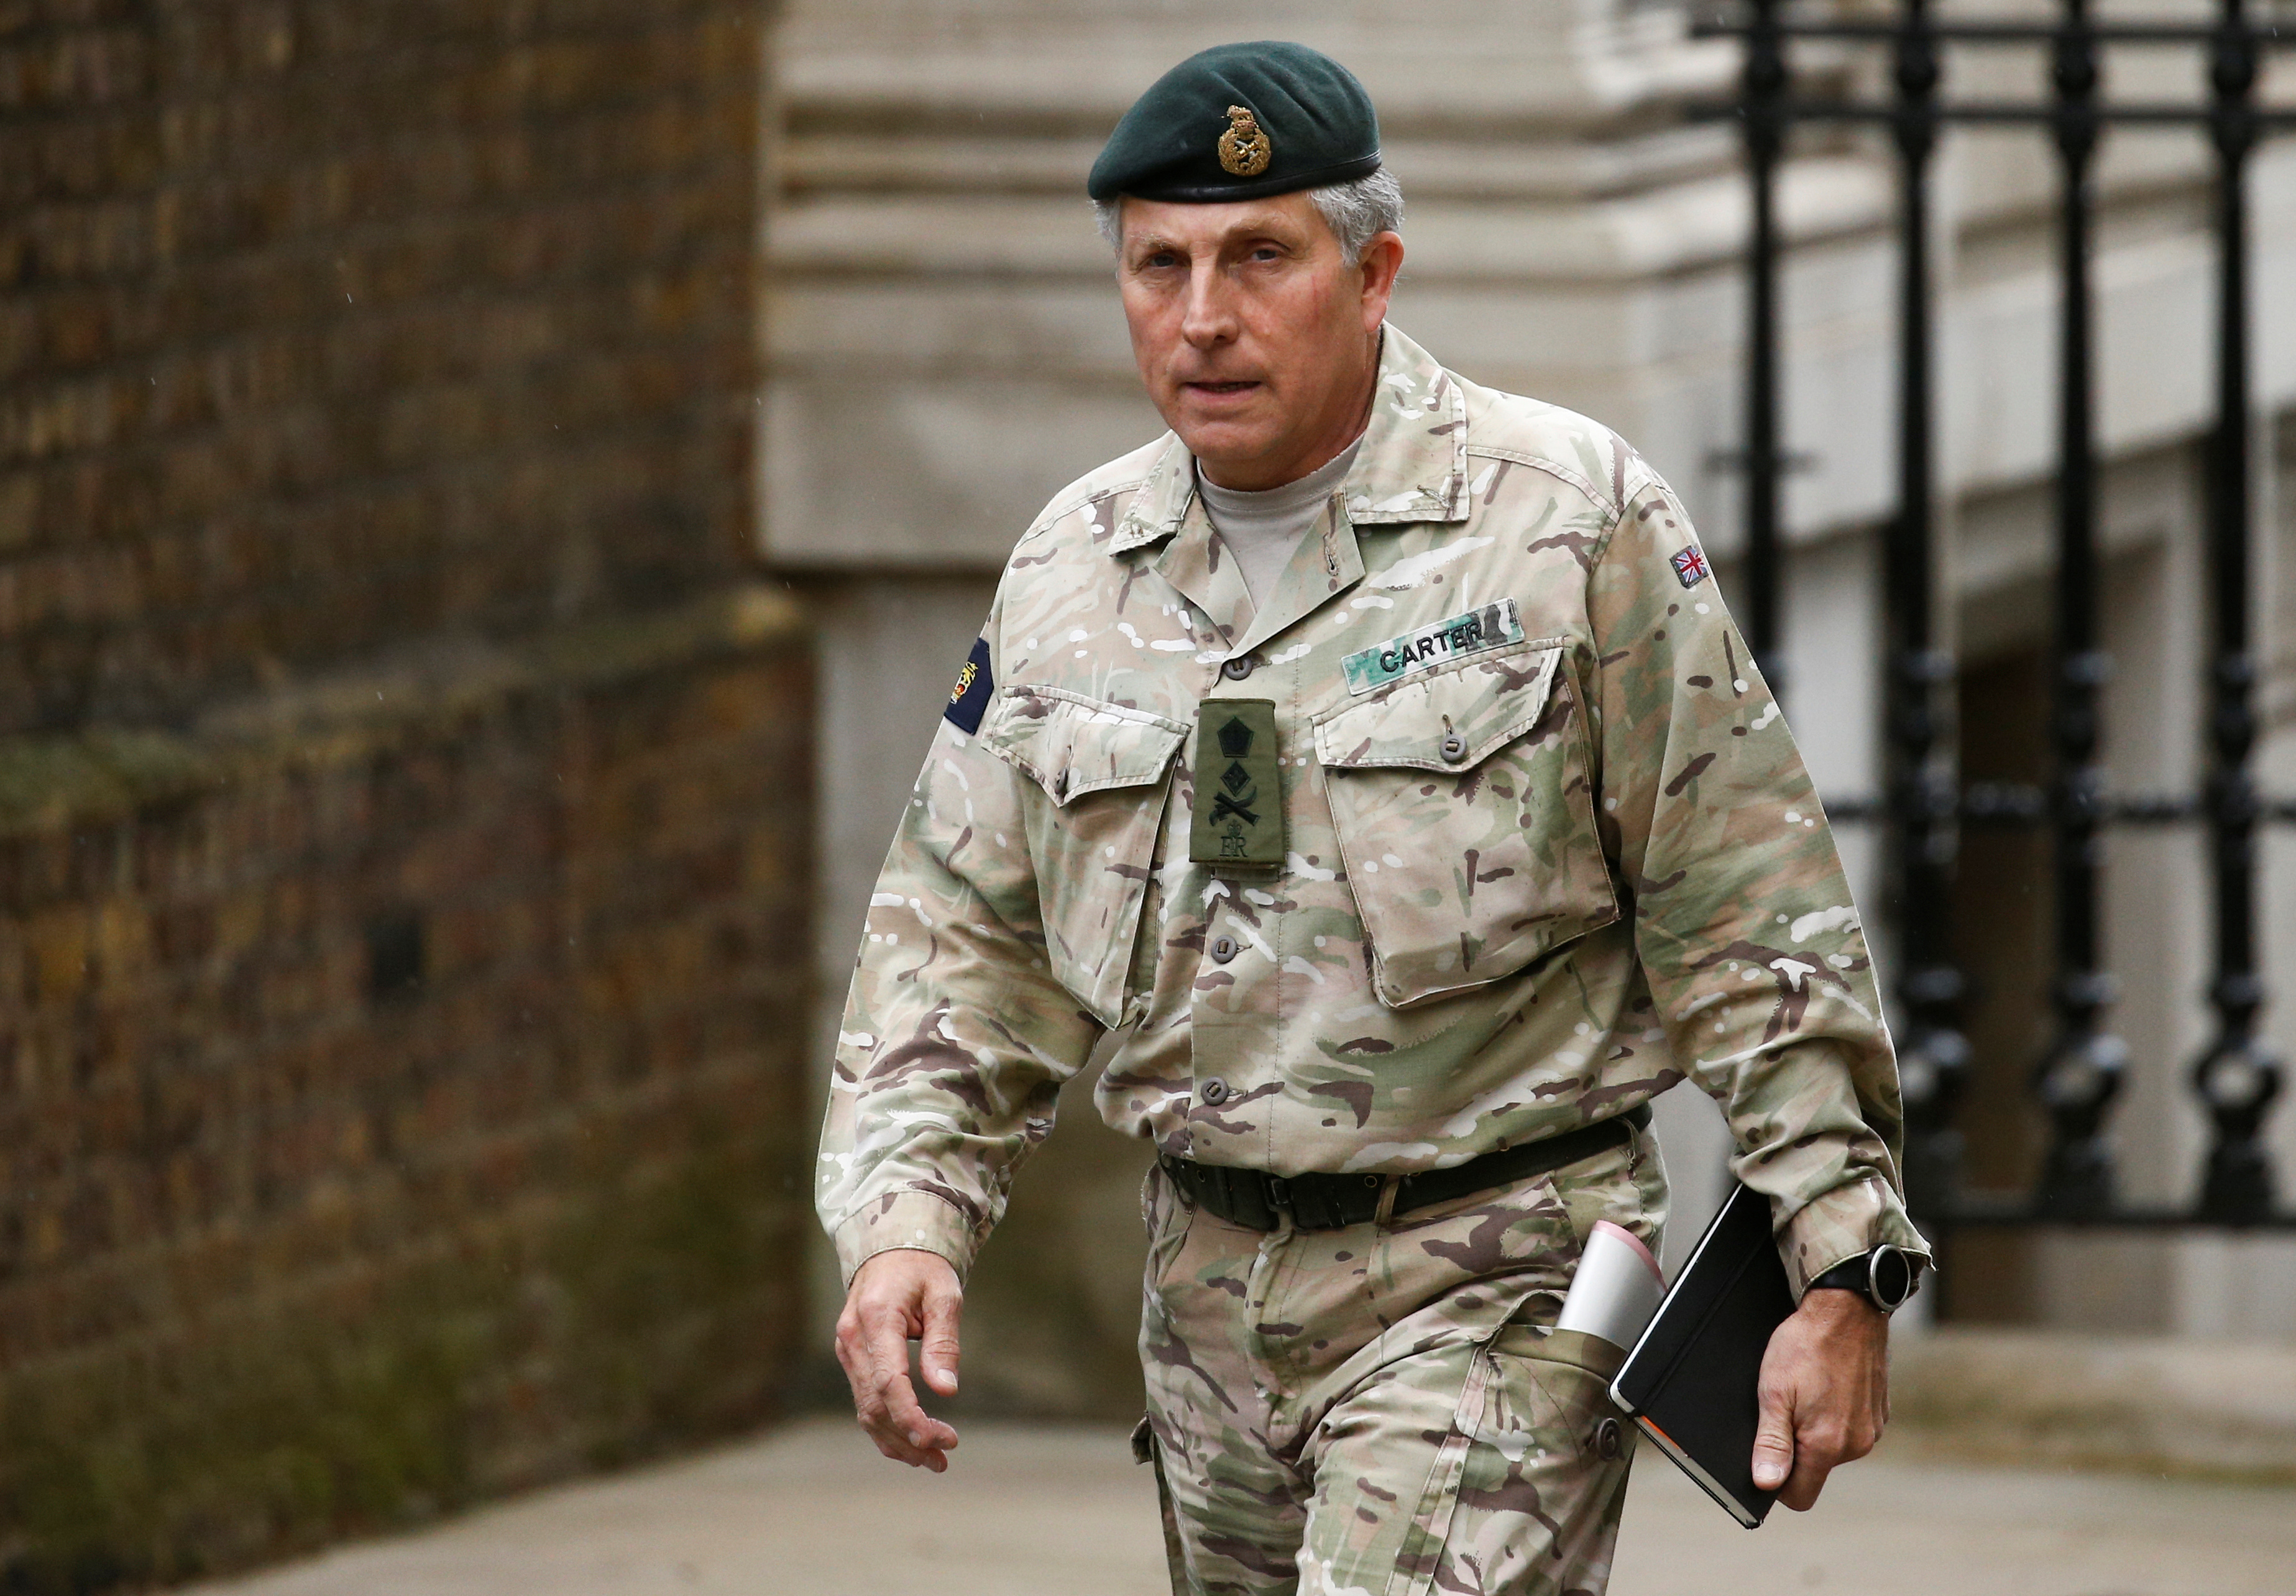 British Army General Sir Nick Carter arrives for a meeting to address the government's response to the coronavirus outbreak, at Downing Street in London, Britain March 12, 2020. REUTERS/Henry Nicholls